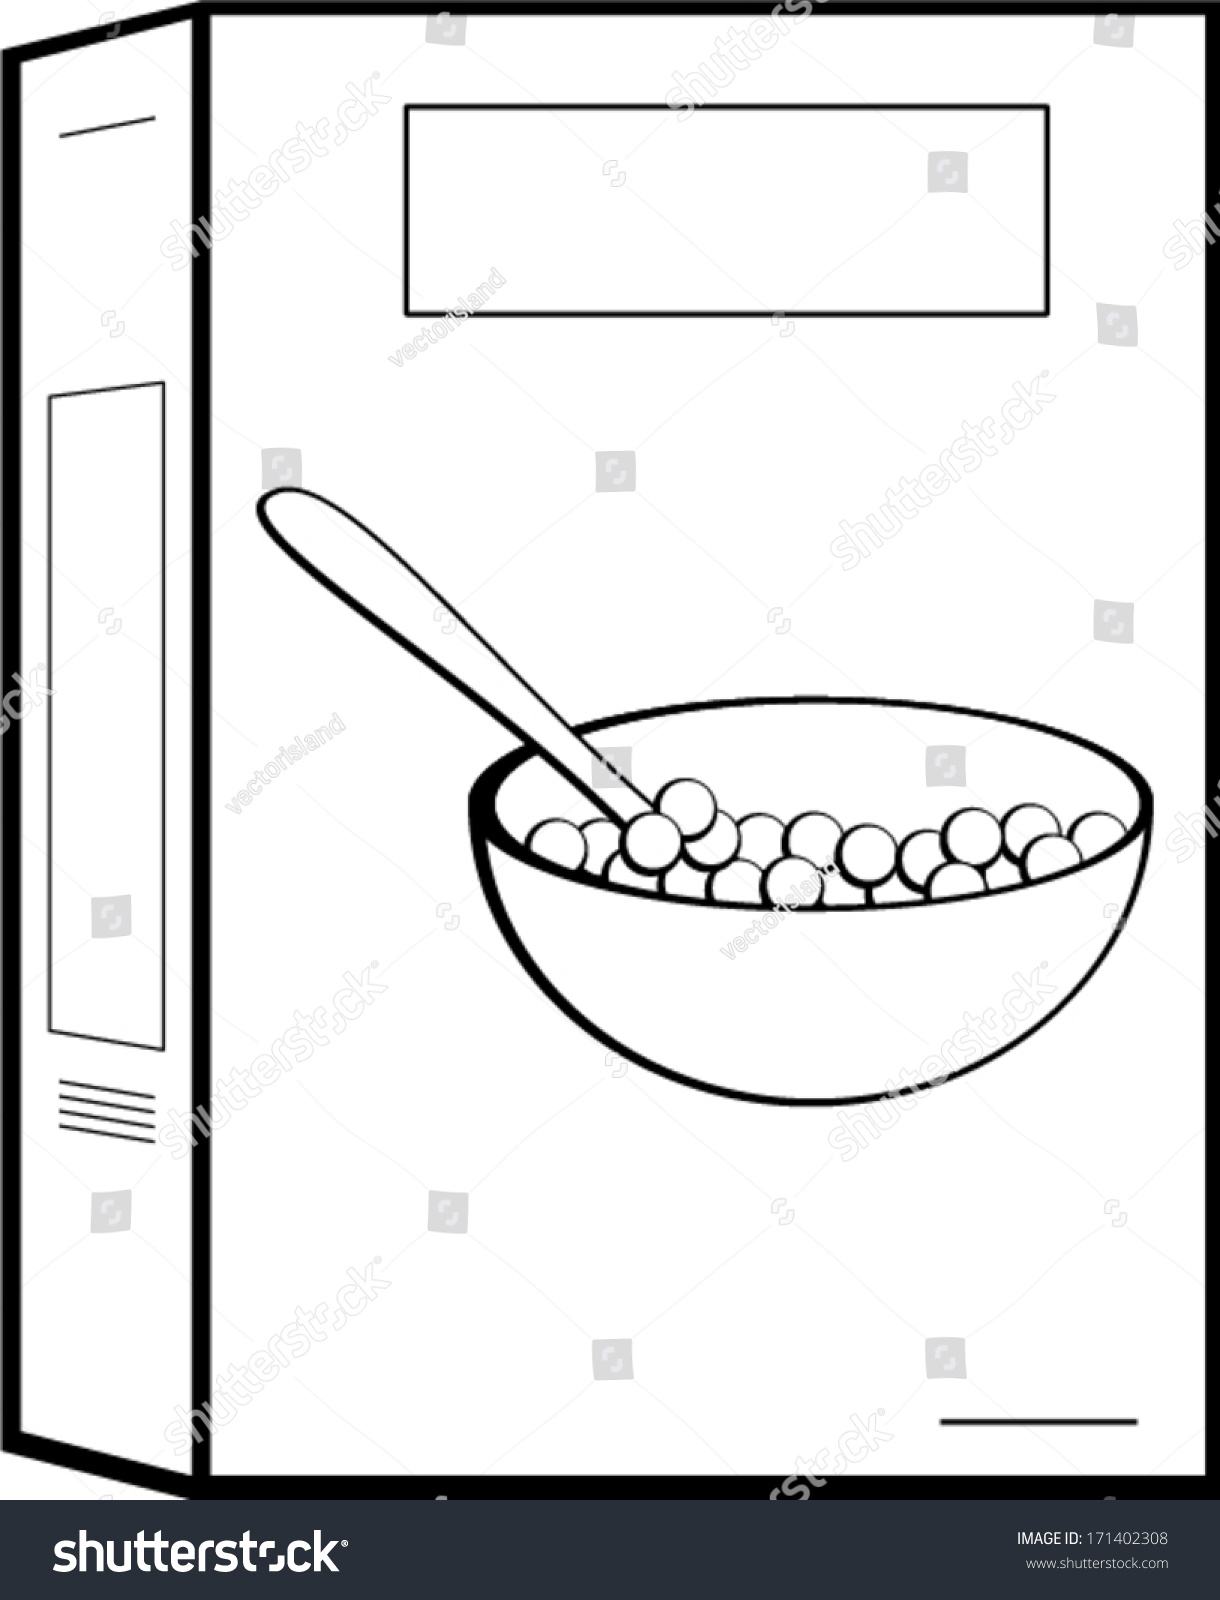 cereal box stock vector 171402308 shutterstock cereal box clipart Cereal Clip Art